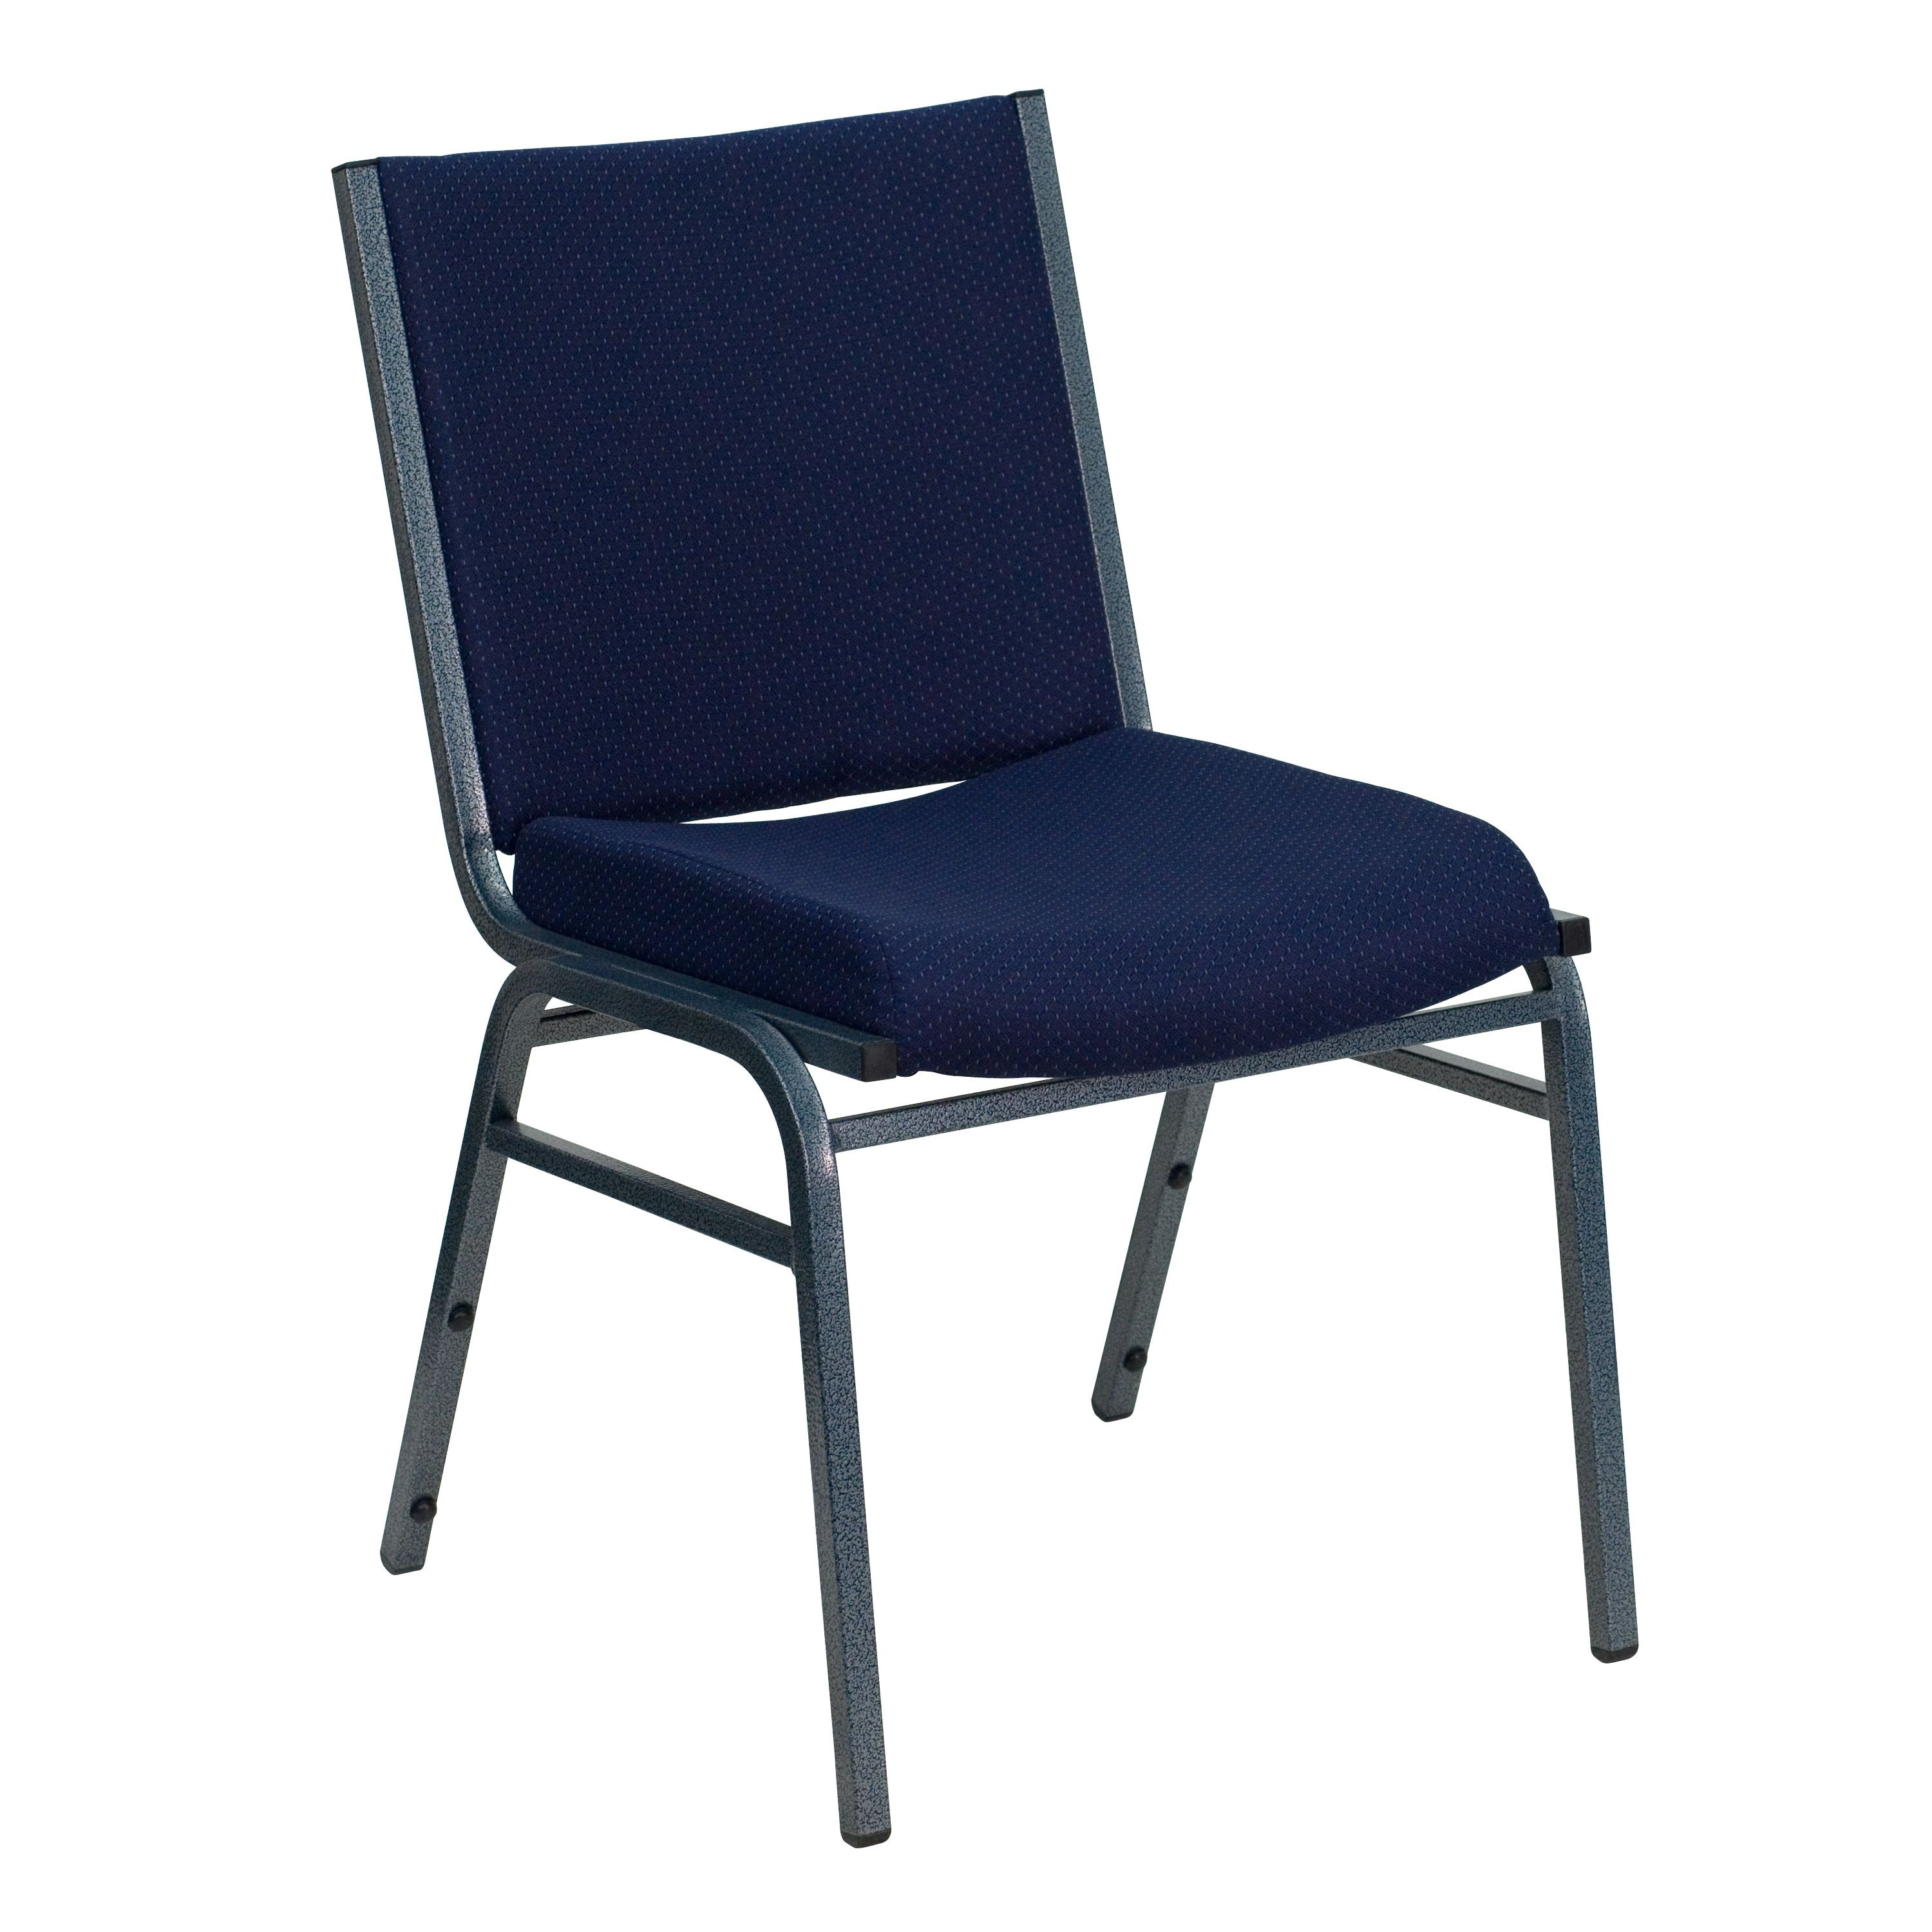 Flash Furniture XU-60153-NVY-GG Heavy Duty, 3'' Thickly Padded, Navy Patterned Upholstered Stack Chair